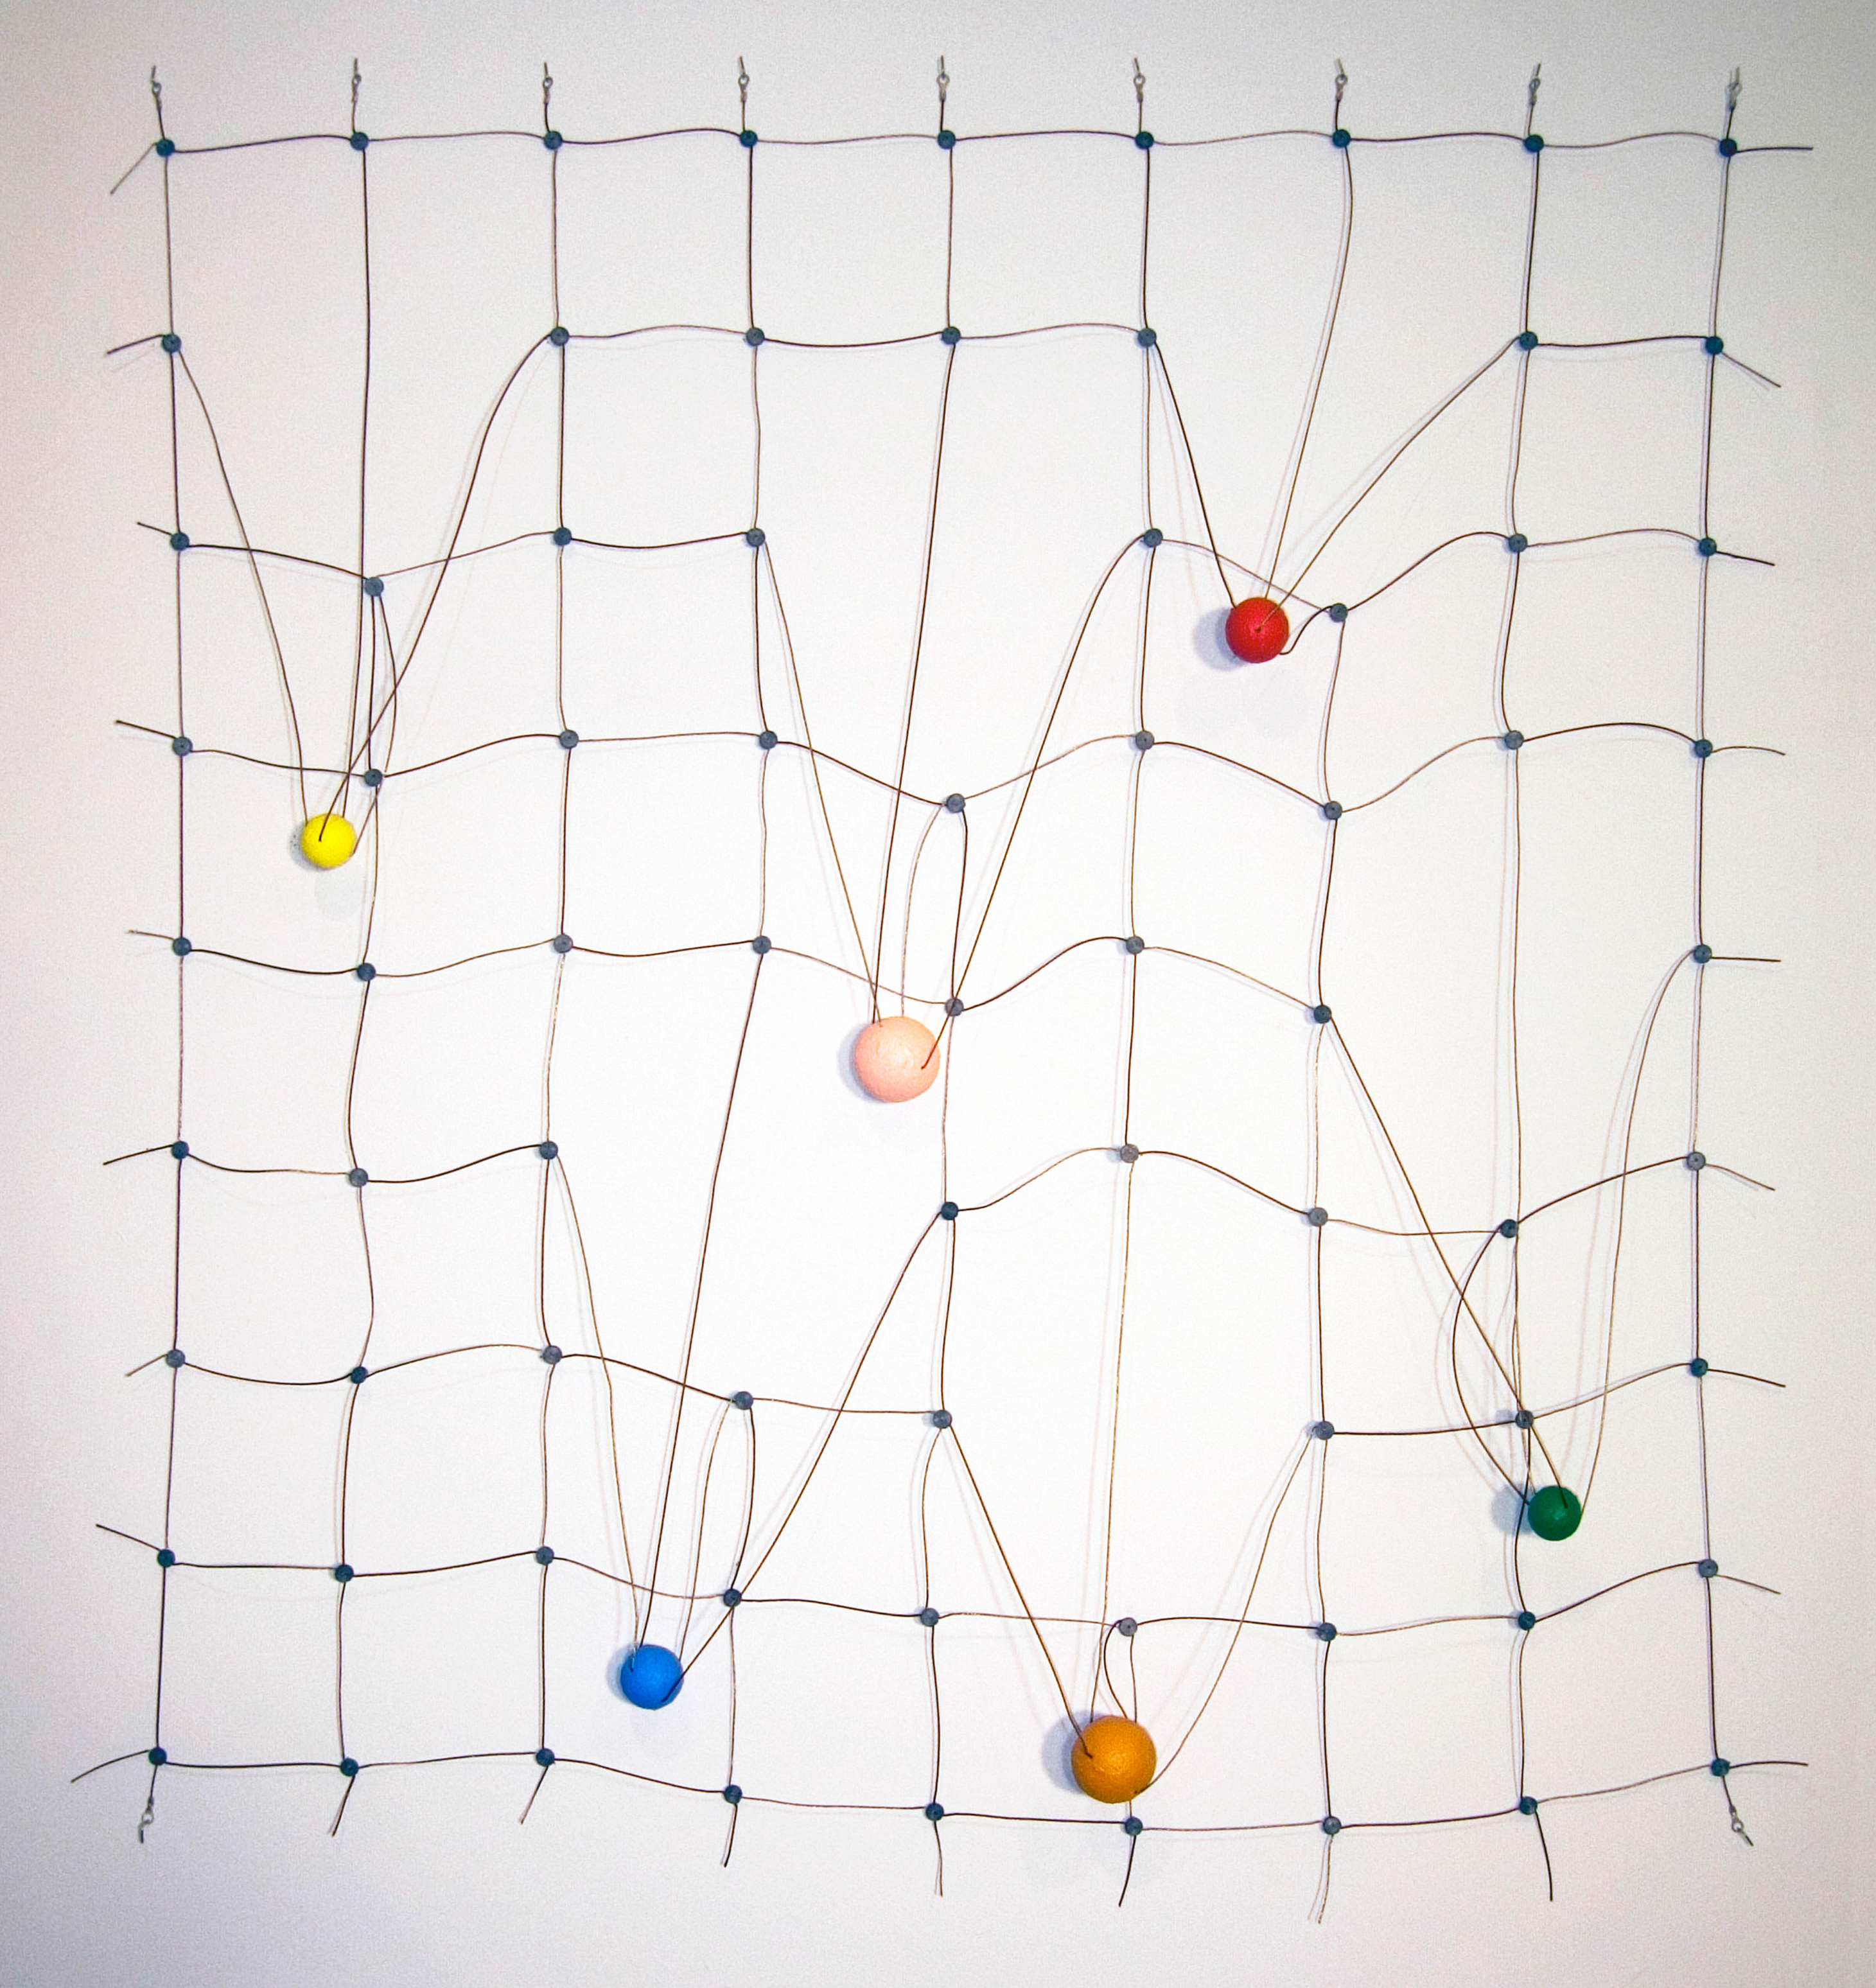 Catawampus, ©2005<br>Monel wire rope, Phosphor bronze wire rope, lead seals, ring terminals wood and acrylic paint. &lt;br&gt;&#xA;45h x 41.5w x 3d (inches) &lt;br&gt;&#xA;Estate of Charles Fahlen &lt;br&gt;&#xA;Exhibited: Steven Wolf Fine Arts, 2008